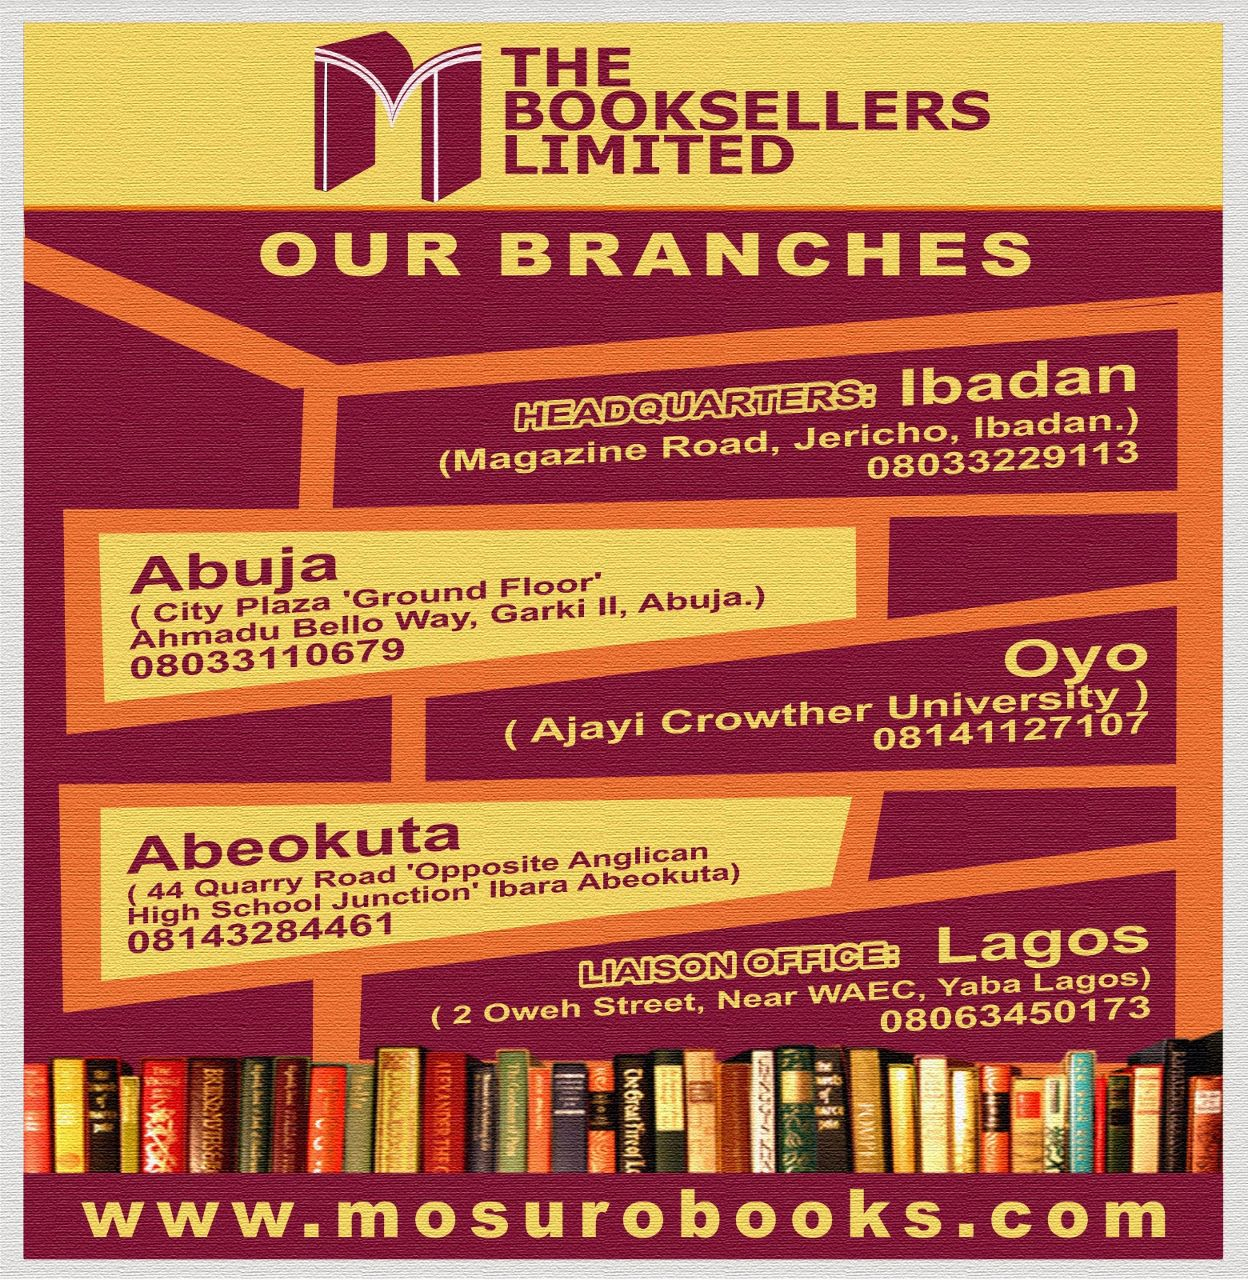 THE BOOKSELLERS LIMITED